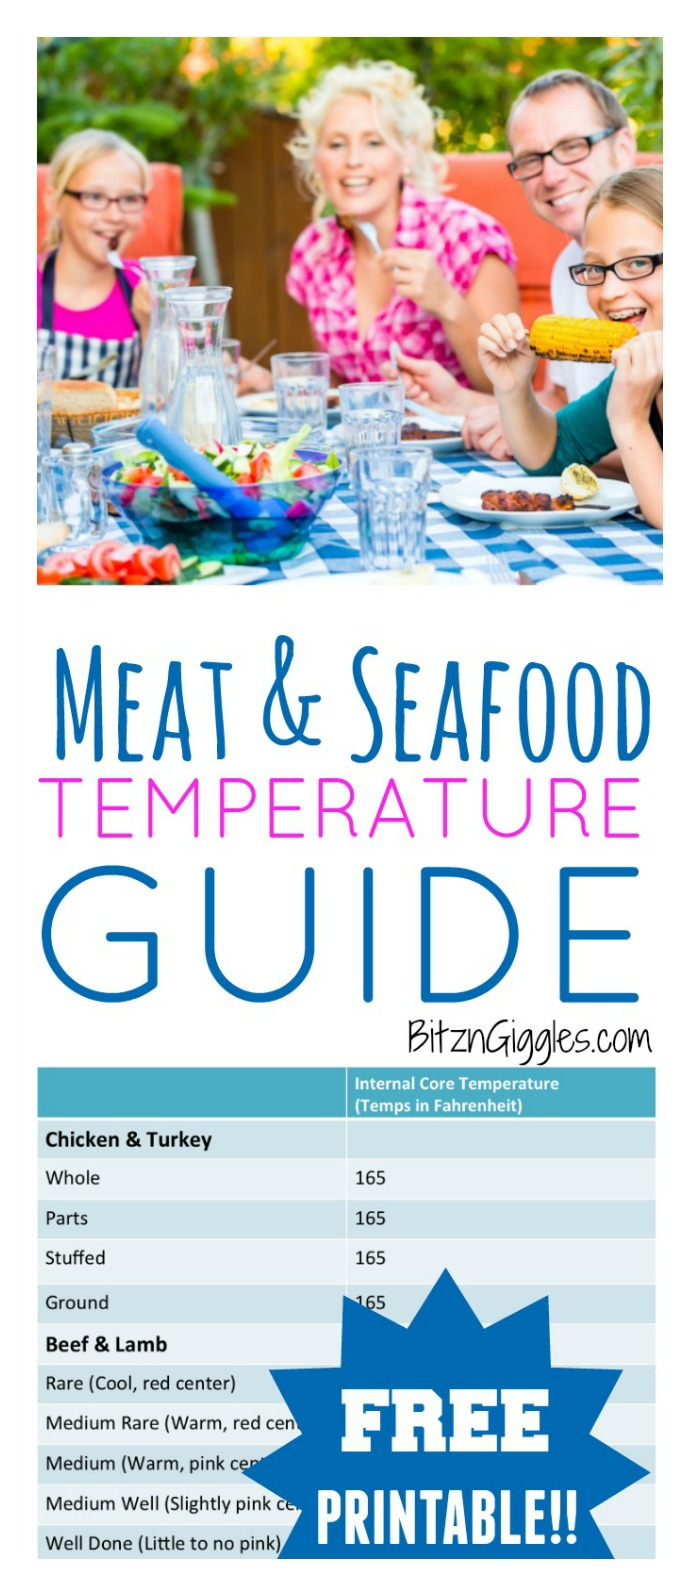 Meat and Seafood Temperature Guide - What a lifesaver this FREE printable is when cooking in the kitchen or grilling out on the patio! This is such a great chart to have on hand to reference!